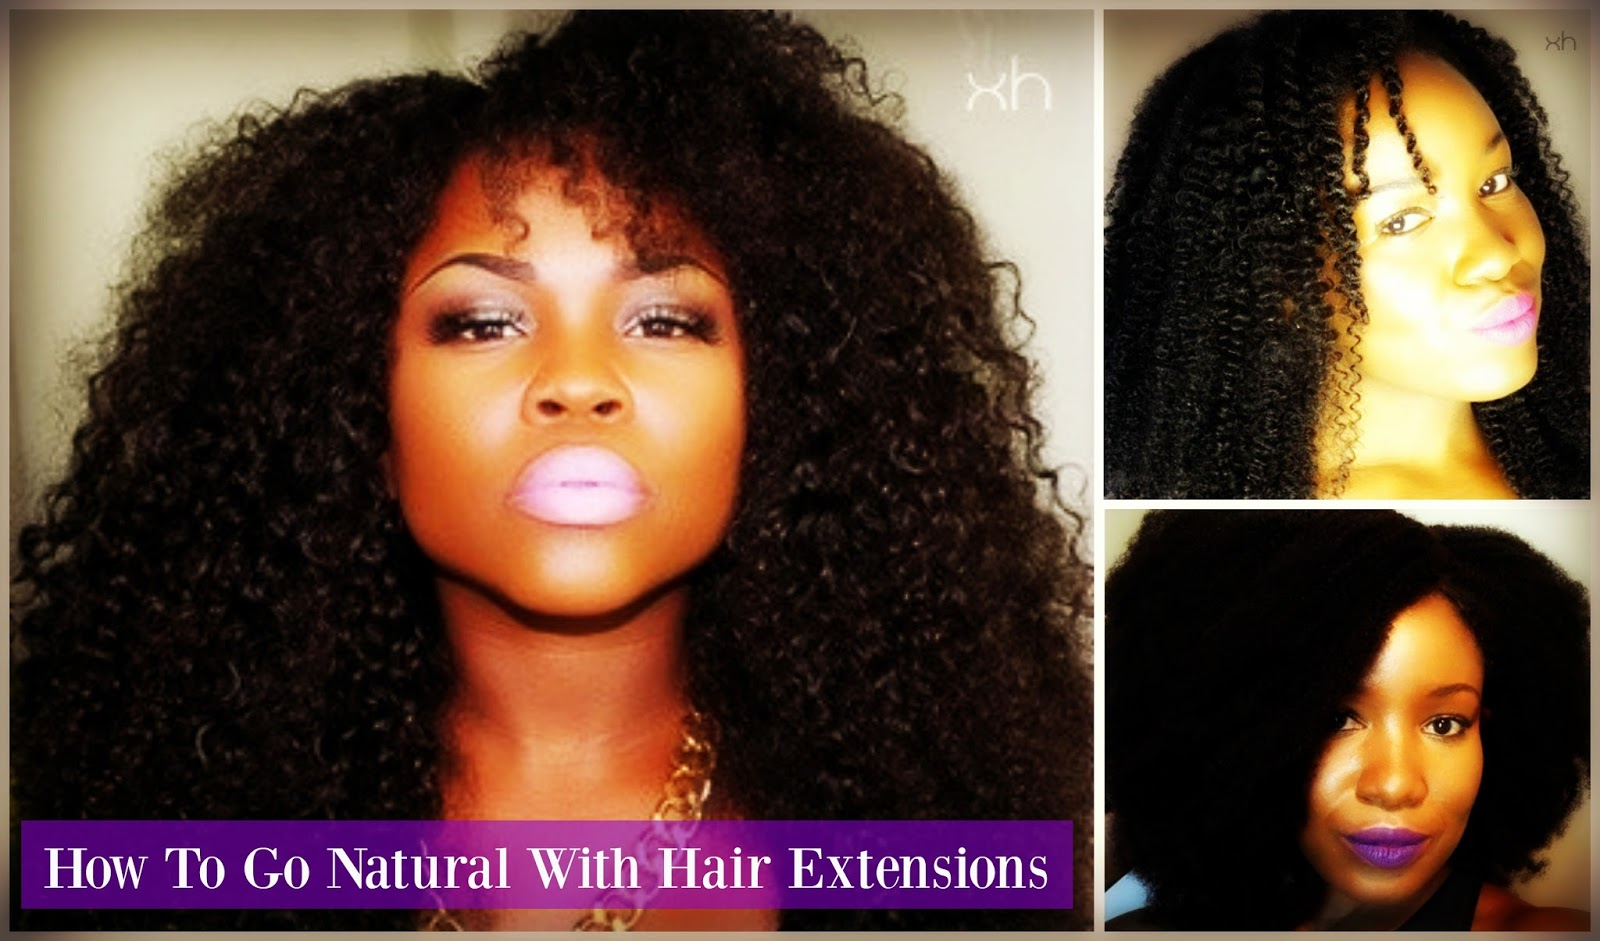 How To Go Natural With Hair Extensions